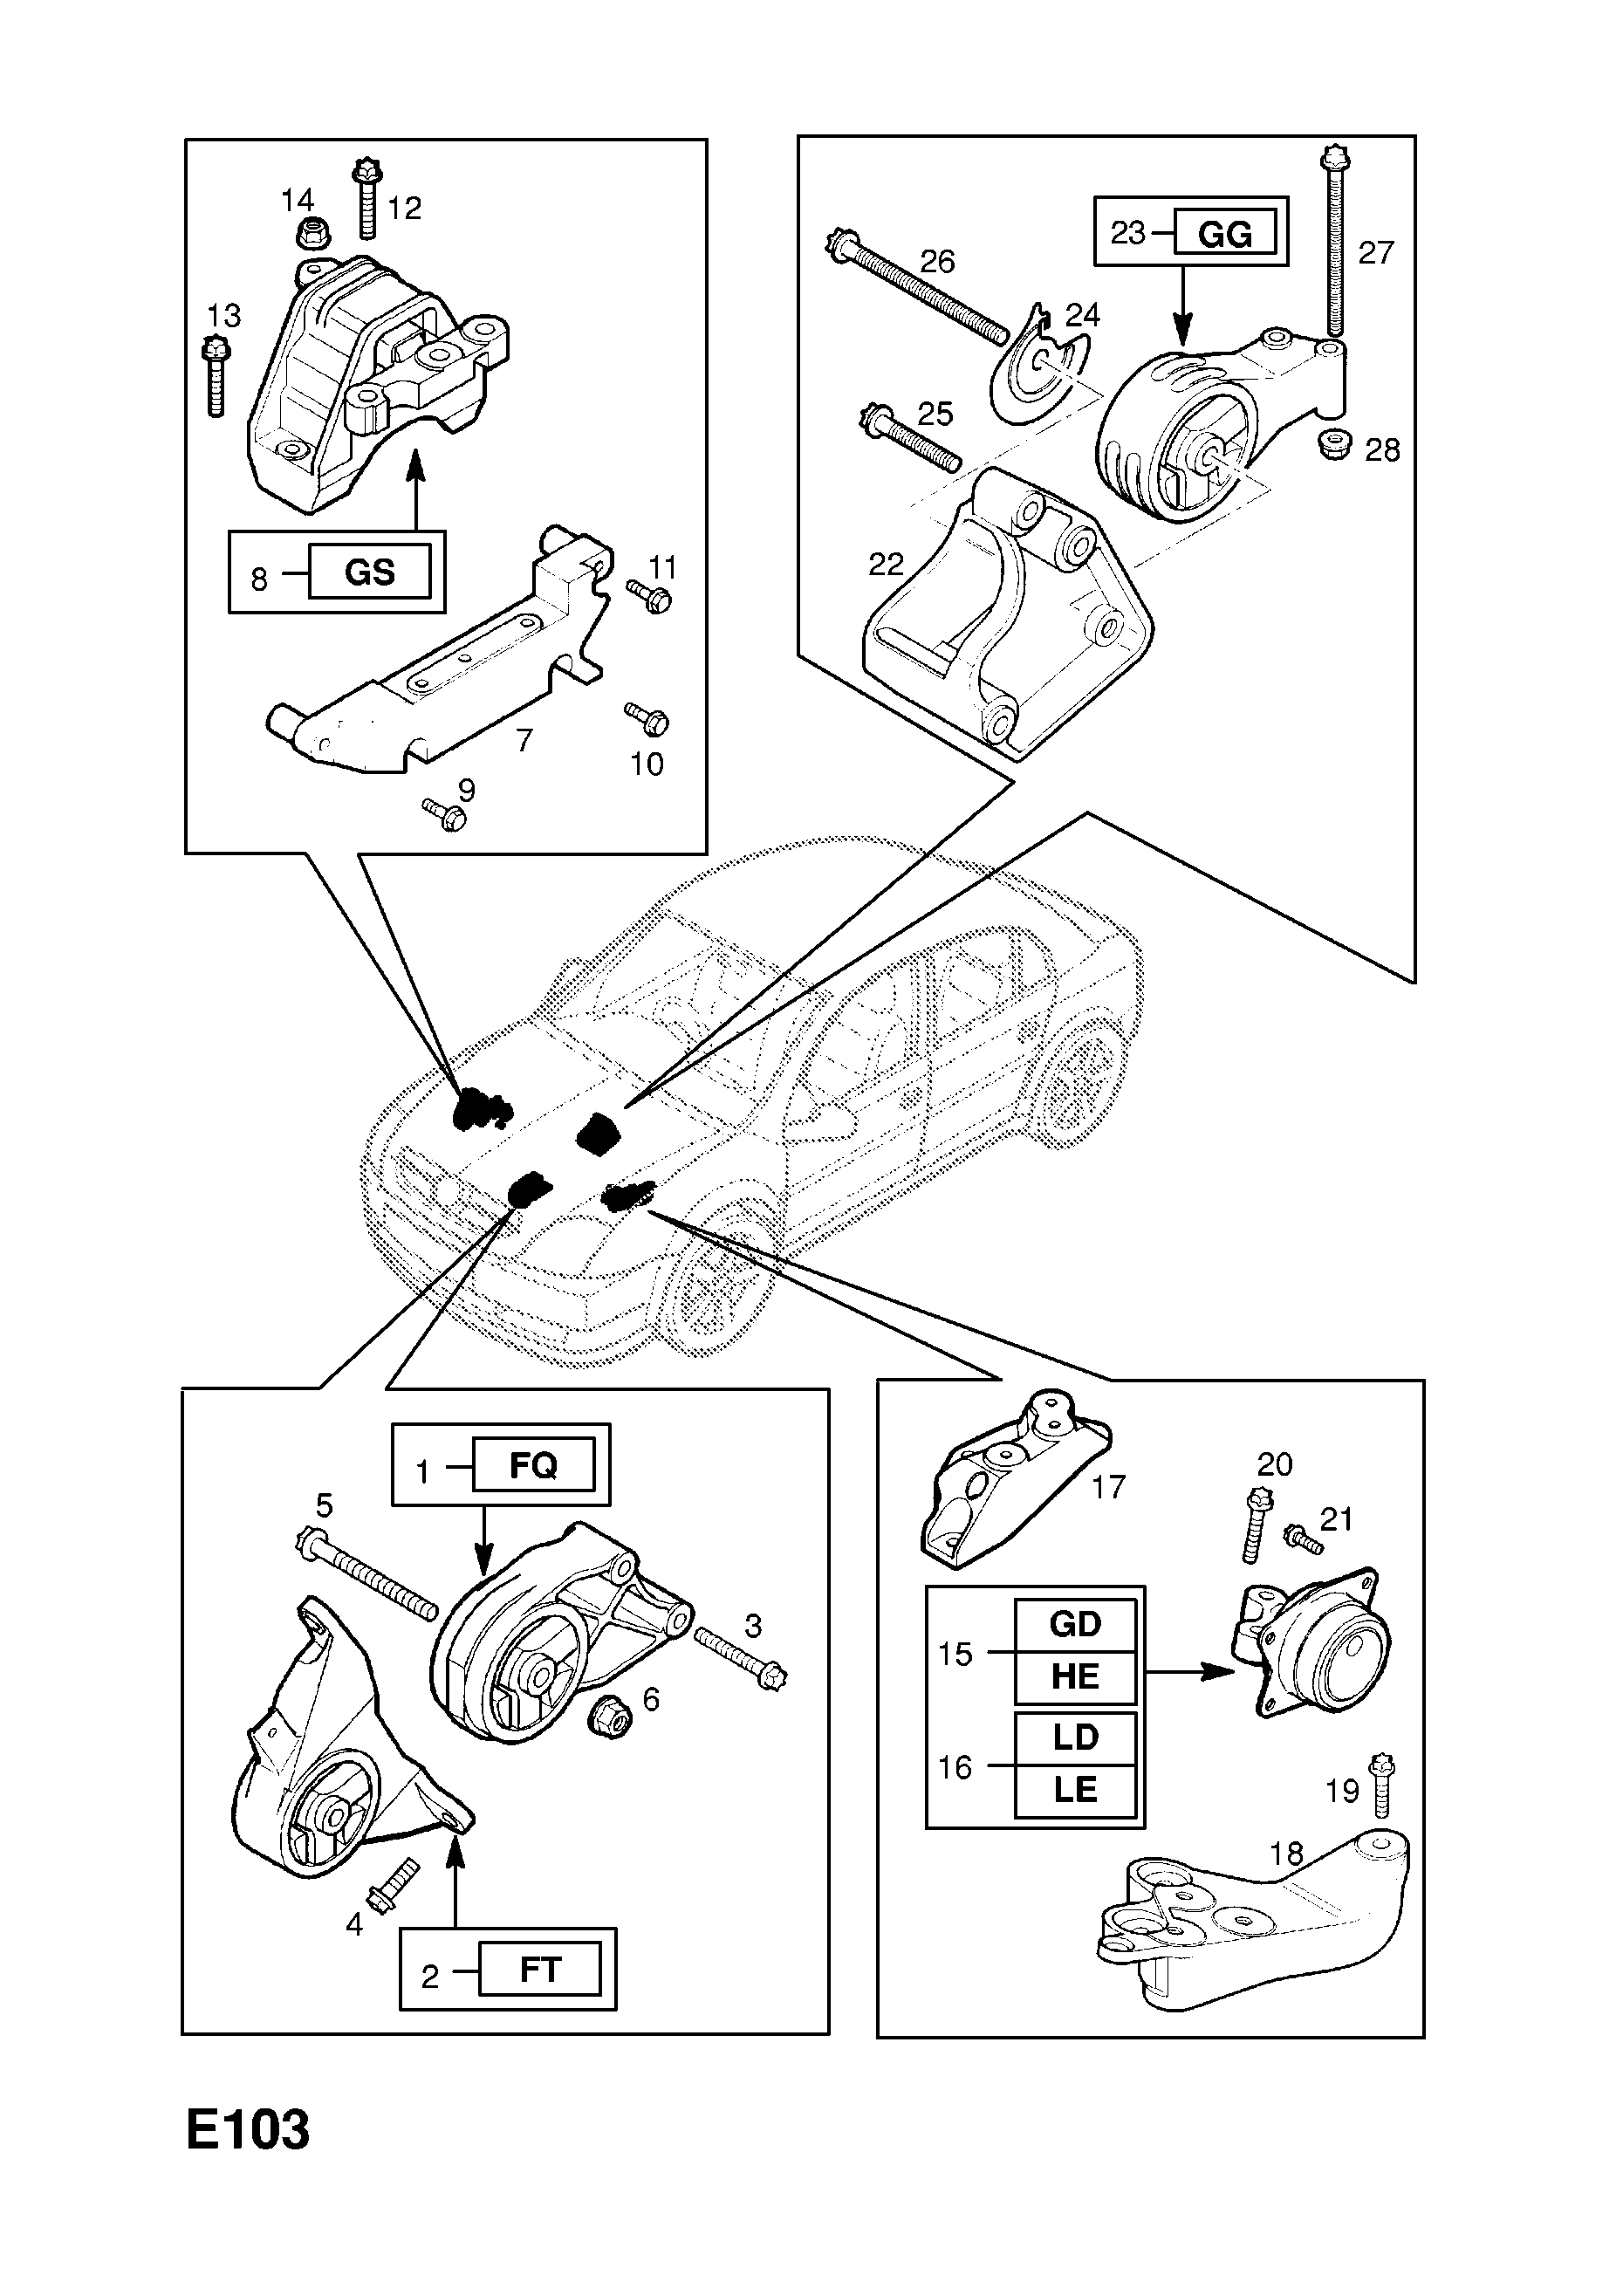 Engine Mountings Left Mounting Opel Vectra C Diagram